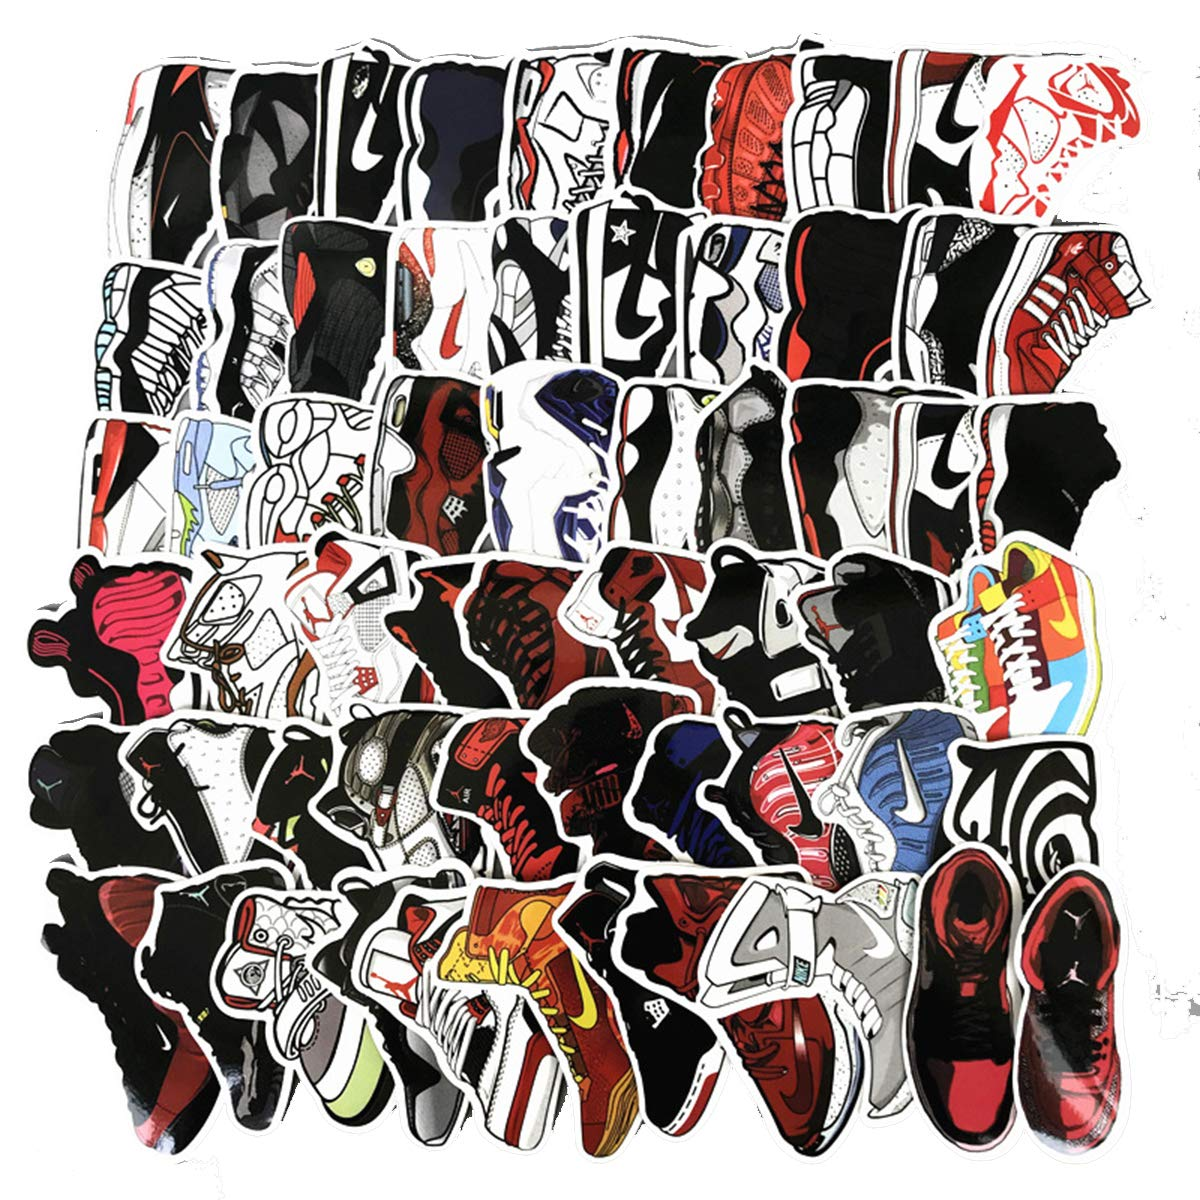 Amazon com meet holiday jordan aj sneakers theme stickers waterproof vinyl scrapbook stickers car motorcycle bicycle luggage decal 60 pcs laptop stickers